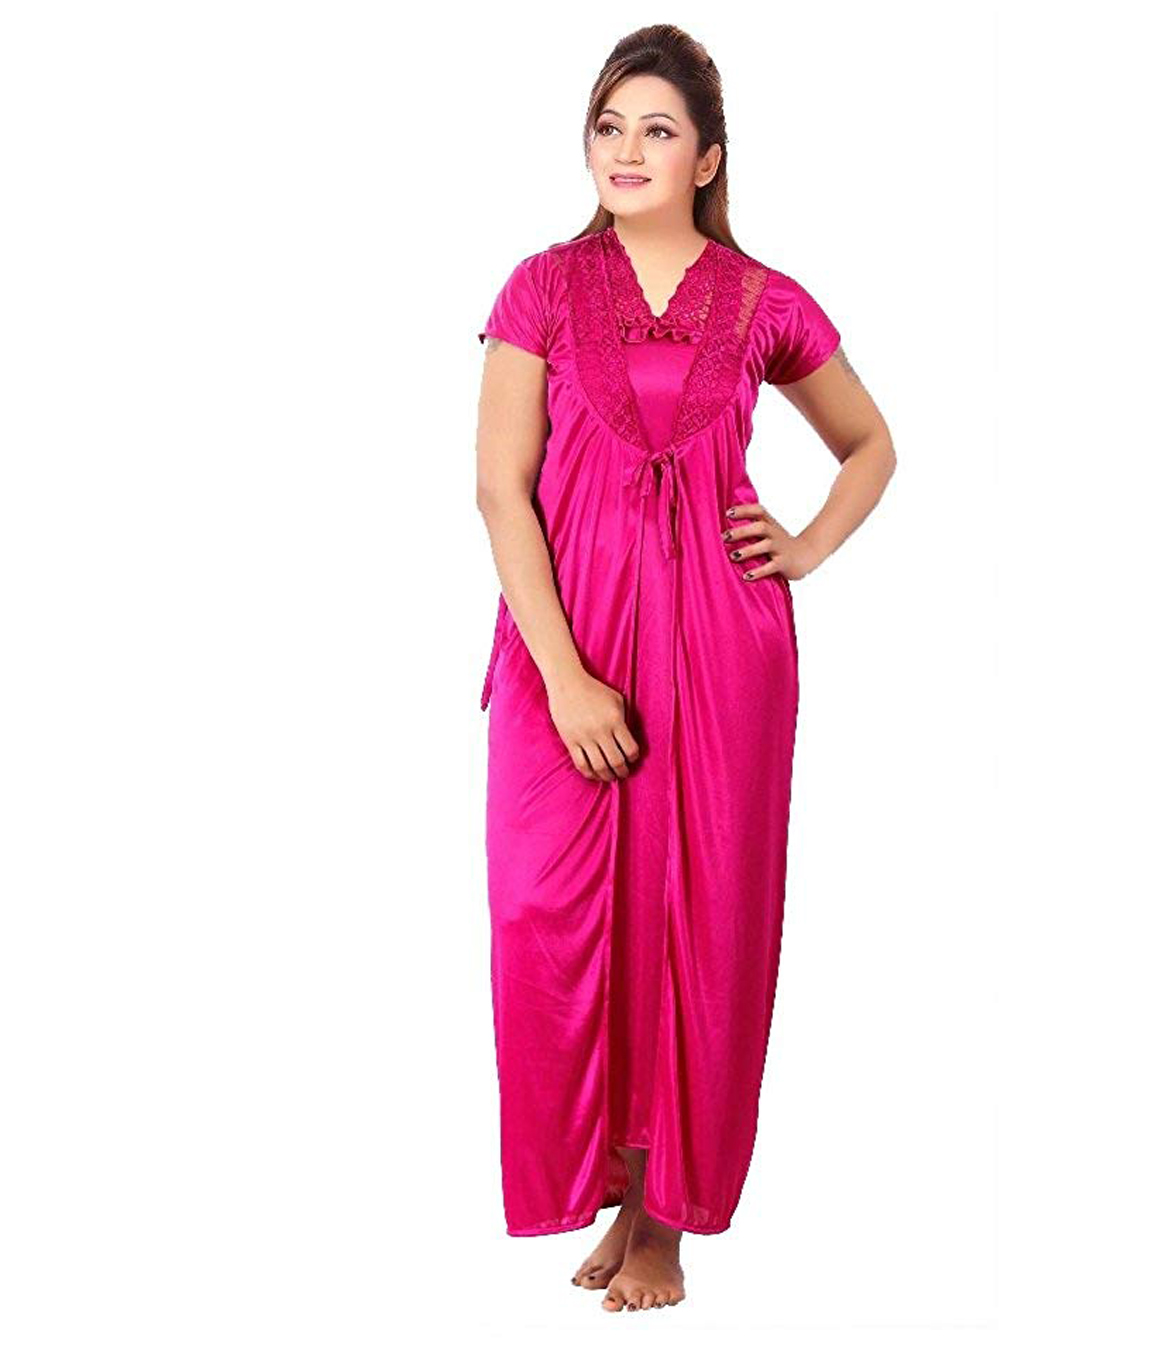 Romaisa Women`s Satin Nighty, Wrap Gown, Top, Pajama, Bra and Thong (Free Size) (Pack of 6) COLOUR : MAGENTA